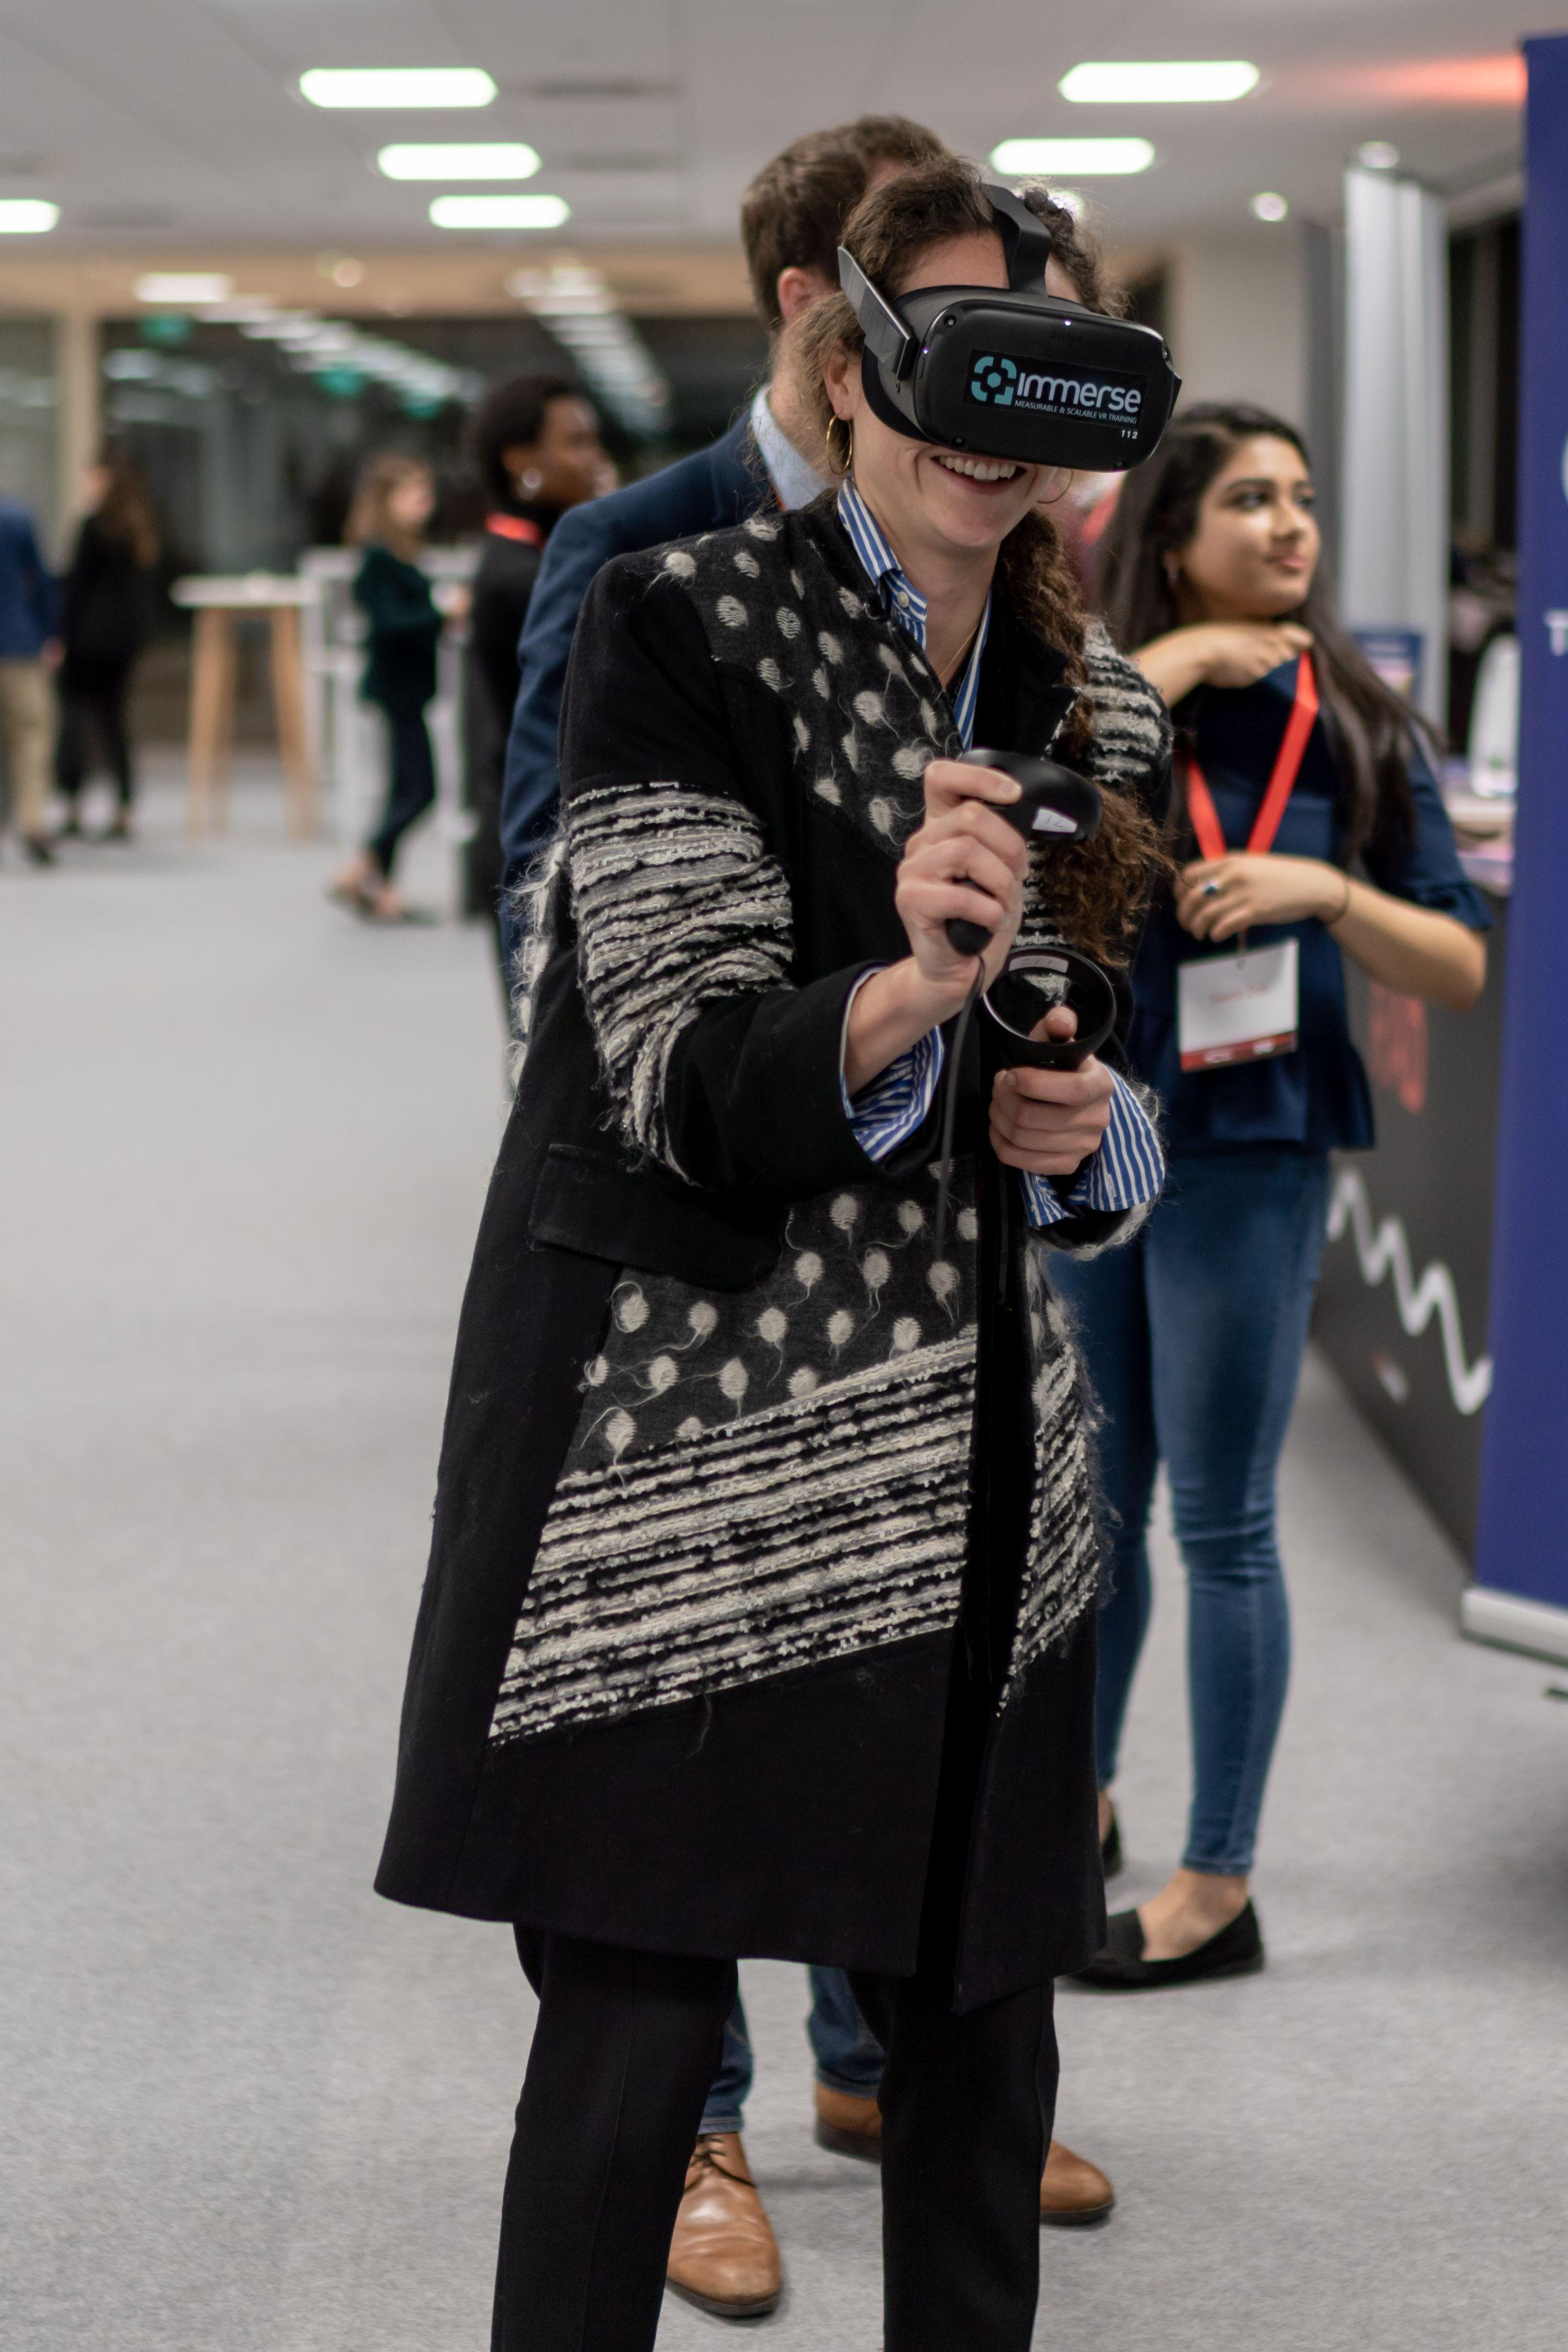 Woman using VR headset at ABP event day